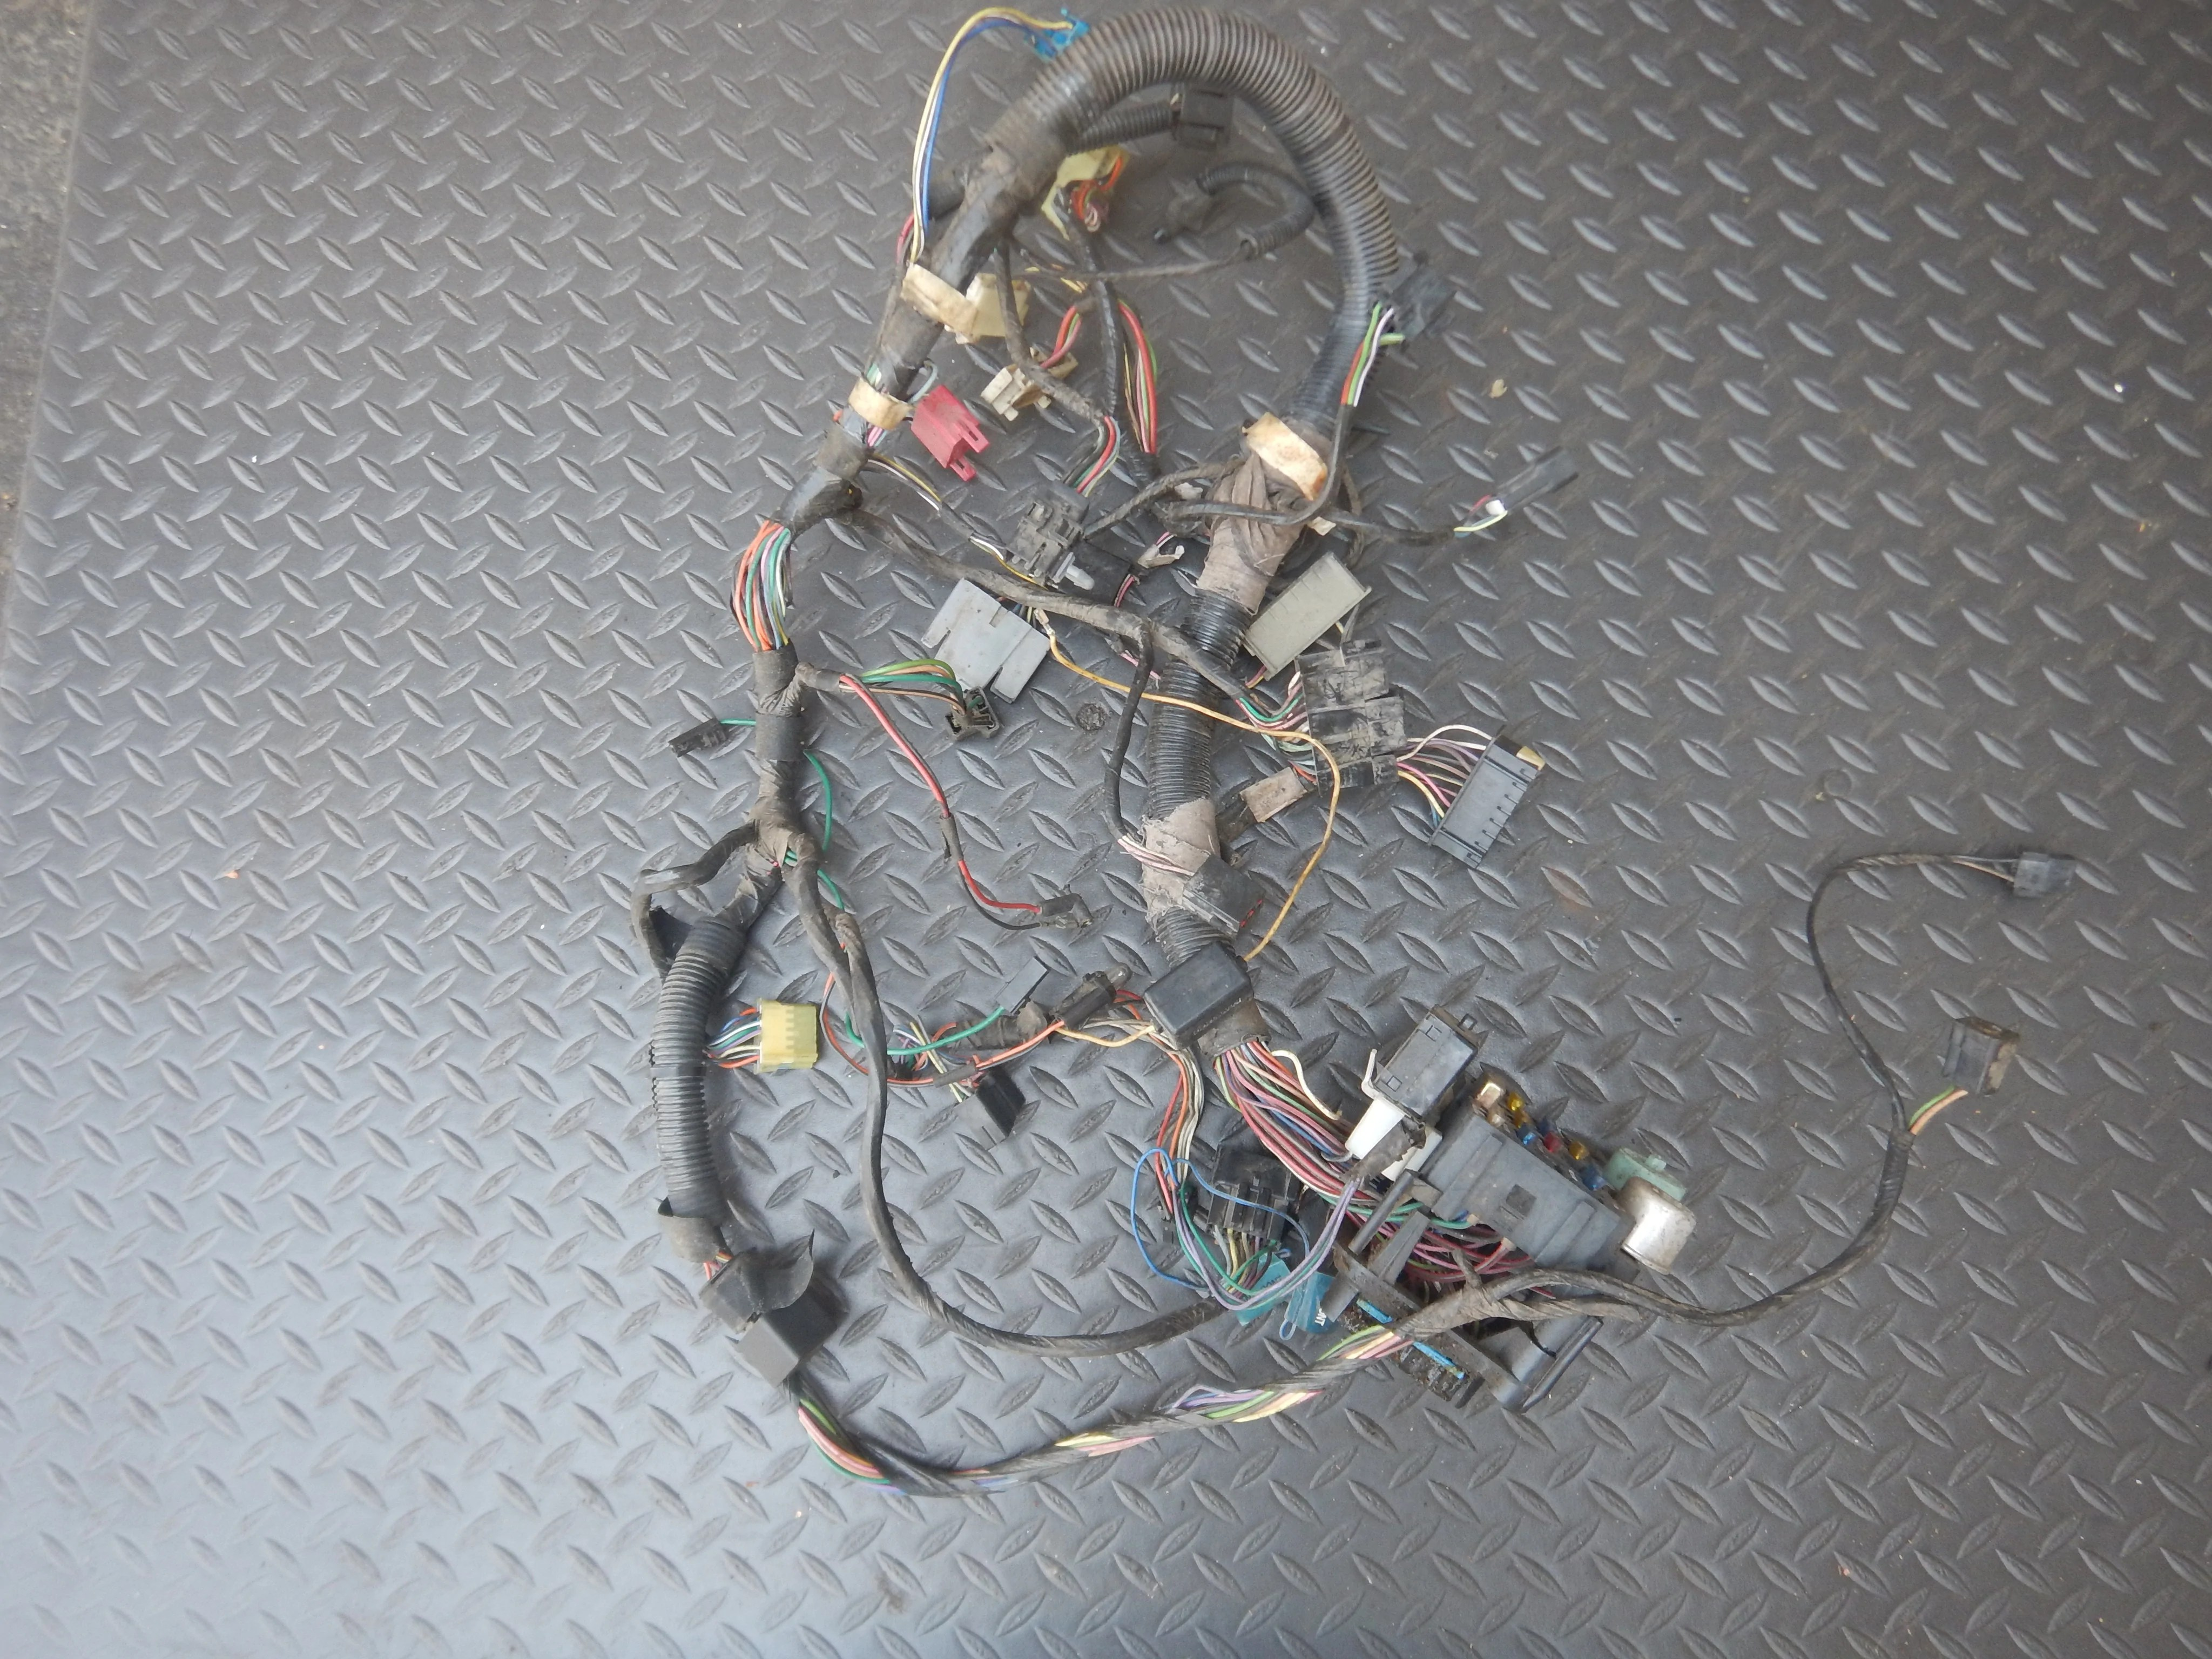 hight resolution of 92 95 wrangler yj dash wire harness best deals on used jeep parts 92 95 wrangler